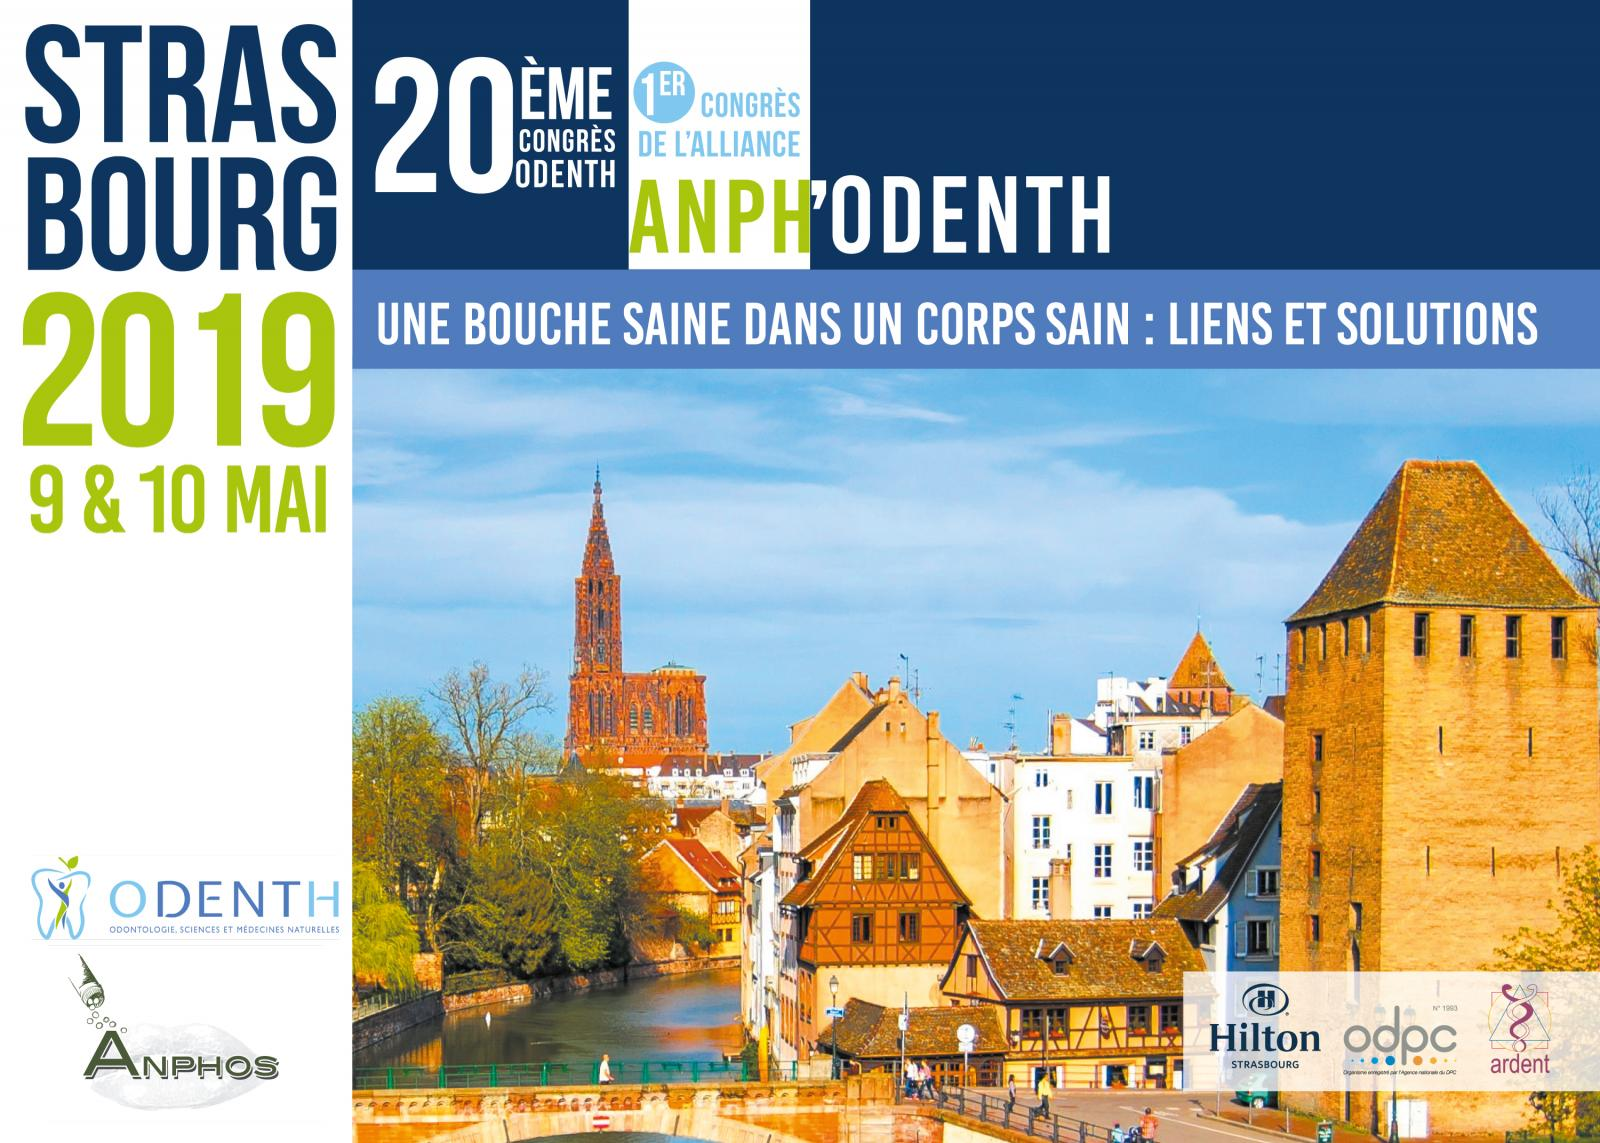 CONGRES ANPH'ODENTH à Strasbourg